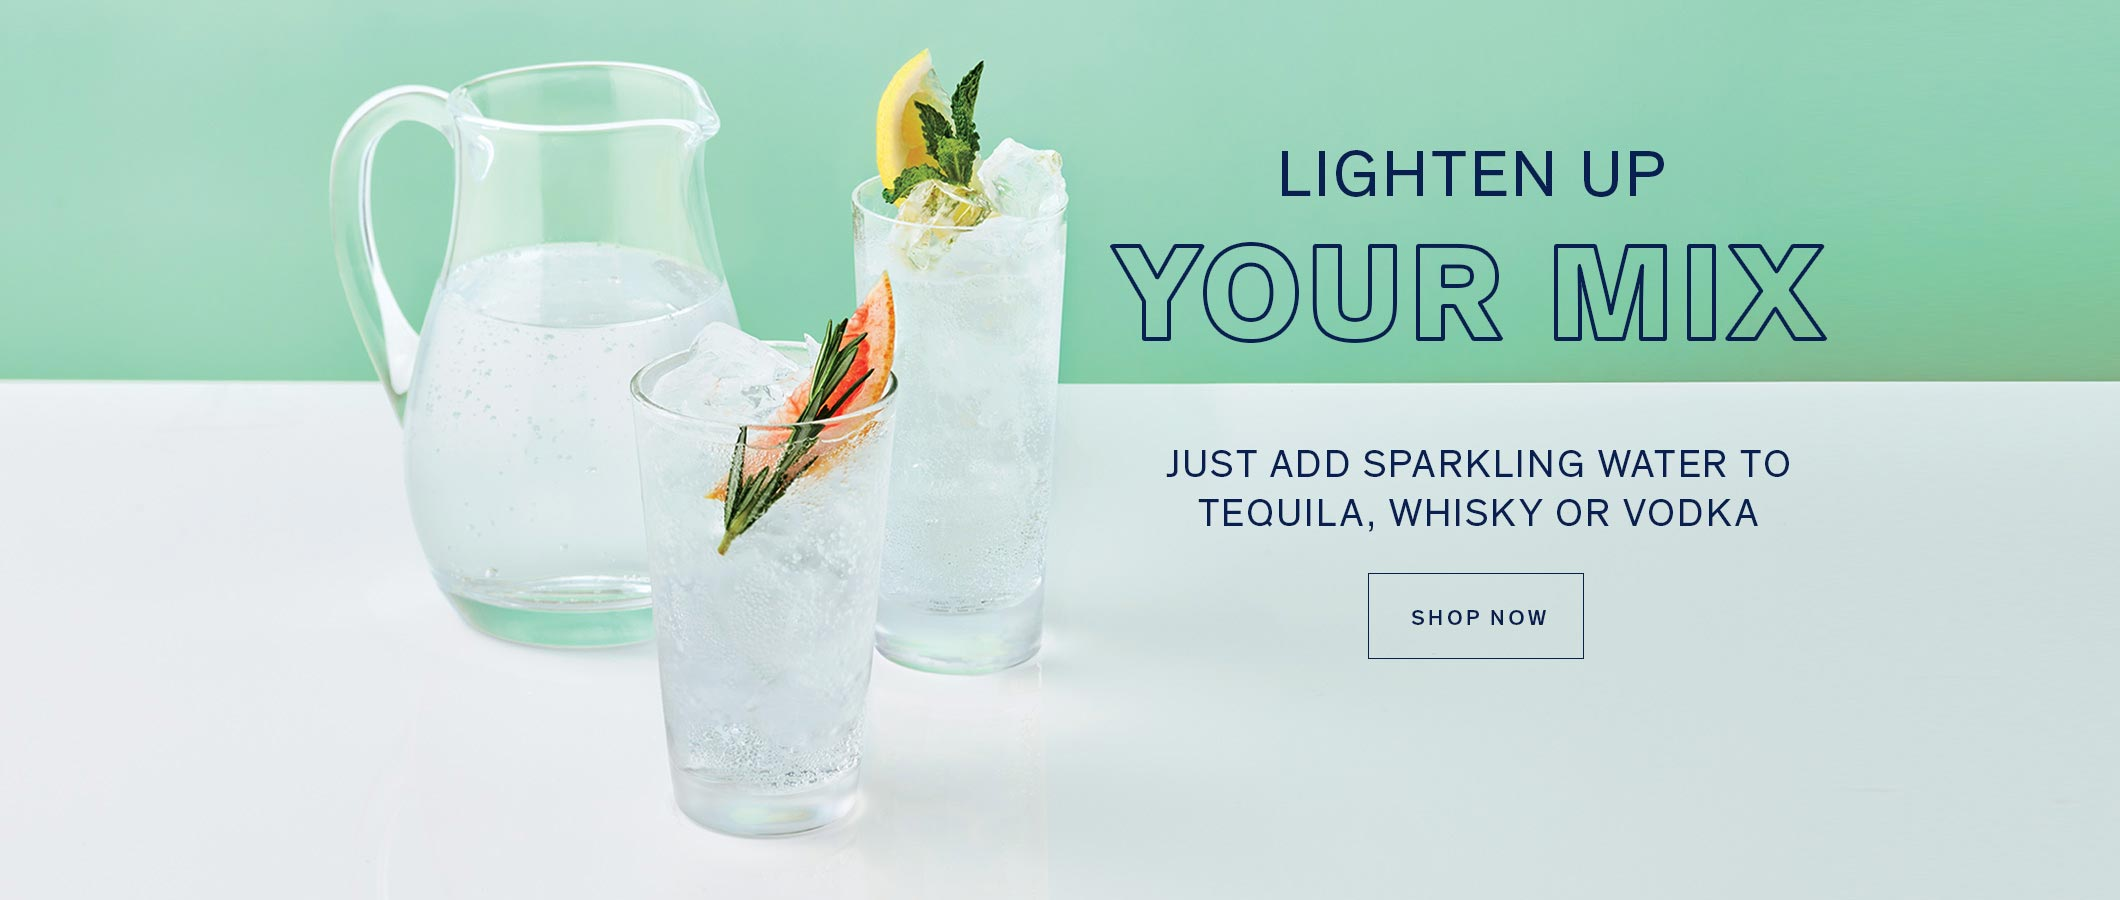 LIGHTEN UP YOUR MIX! Just add sparkling water to tequila, whisky or vodka. SHOP NOW